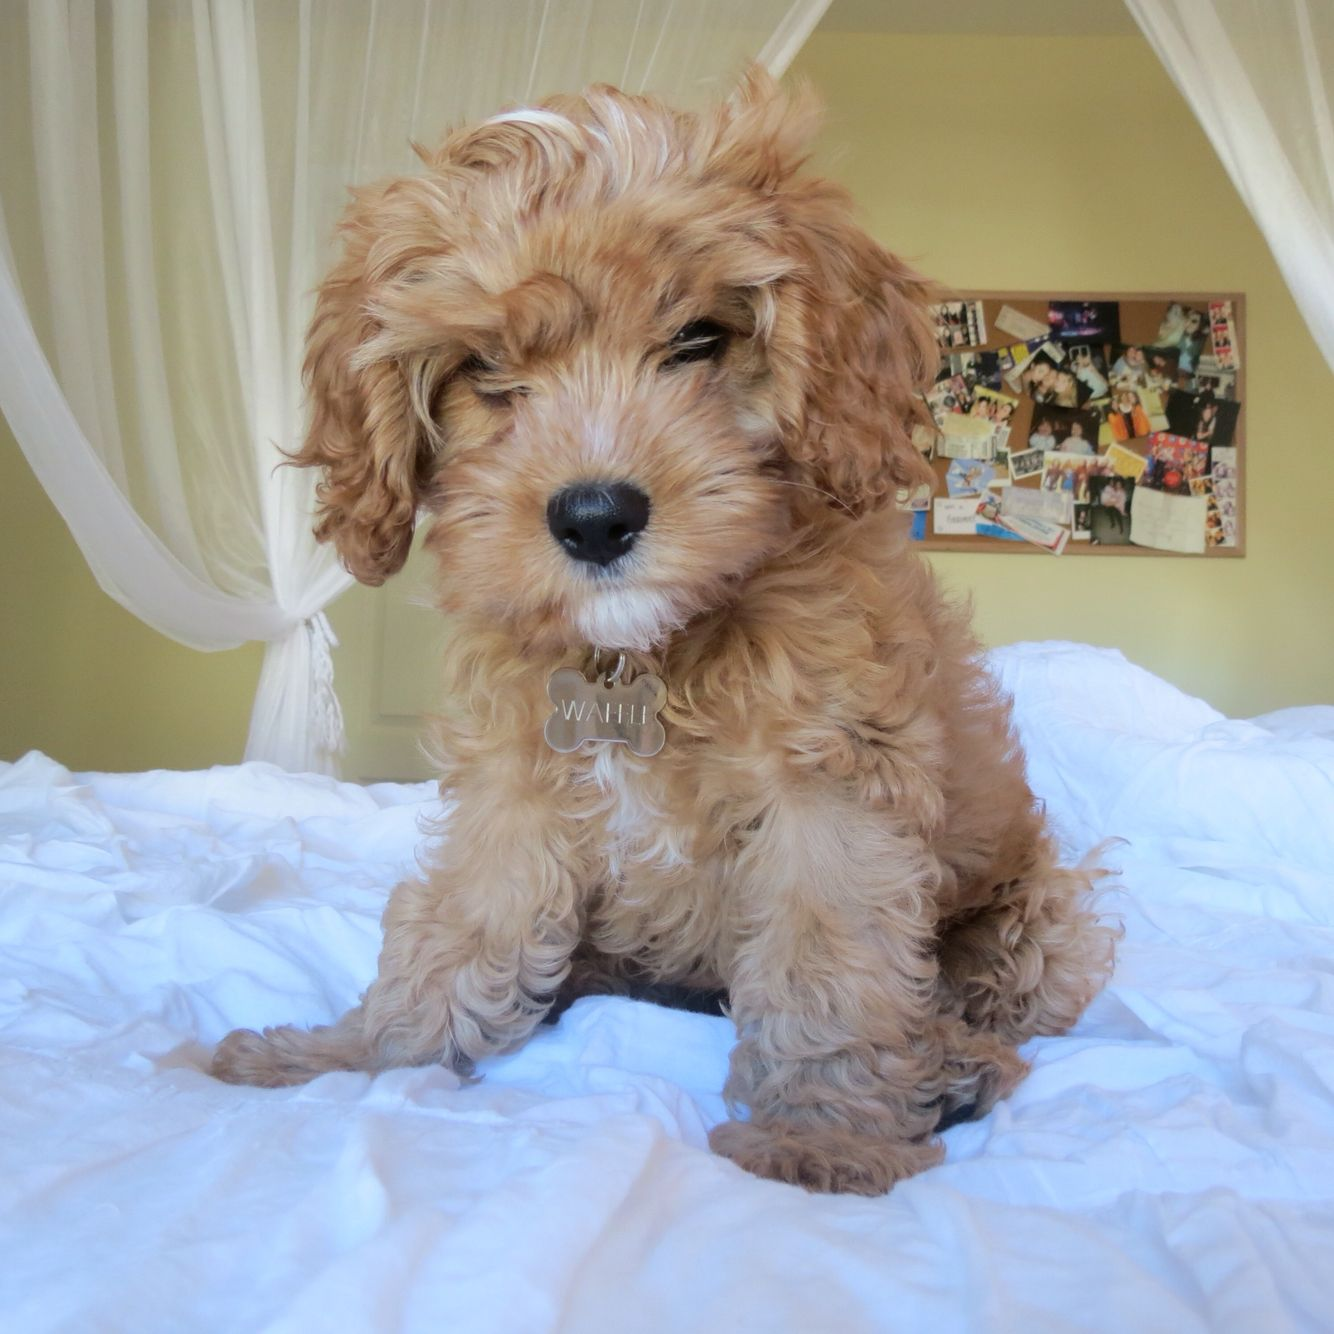 Waffle The Cavapoo Cute Dog Pictures Baby Puppies Cute Animals